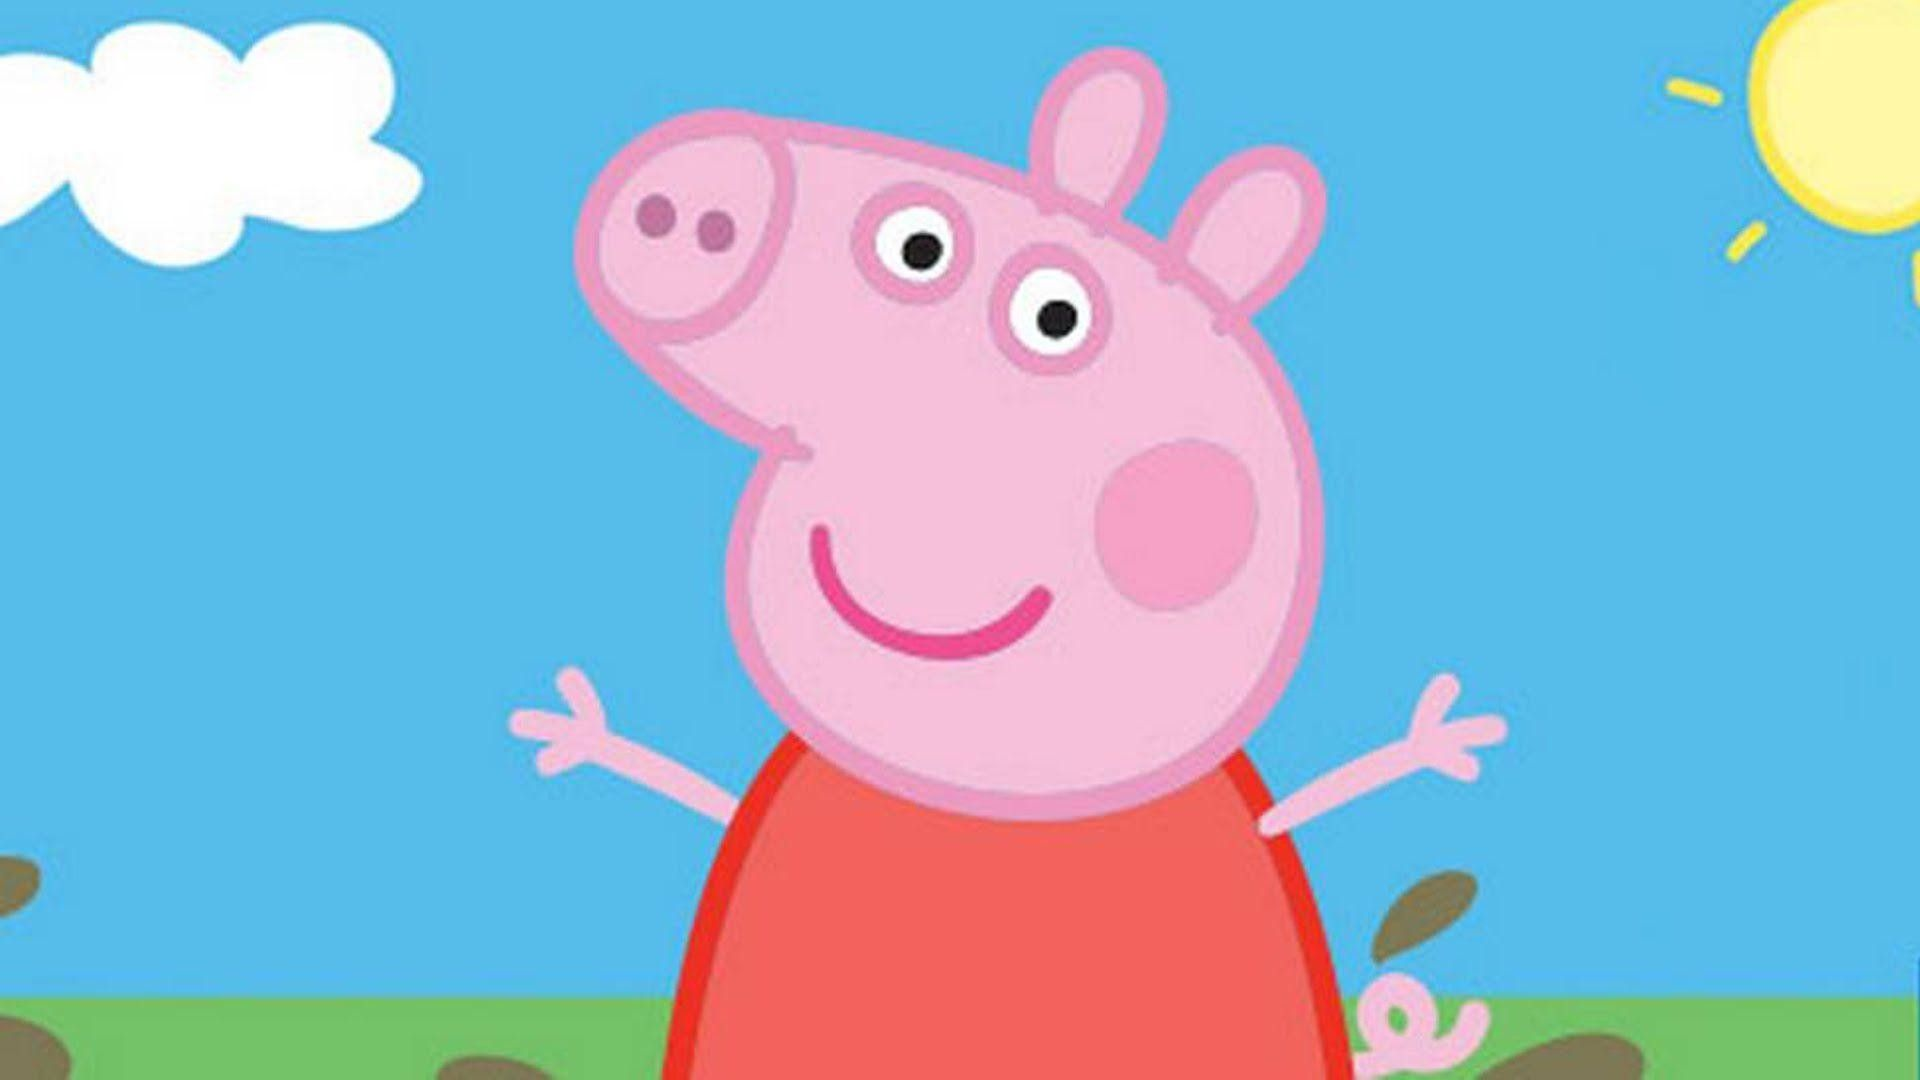 Get the Coolest Computer Wallpaper Designed For Peppa Pig